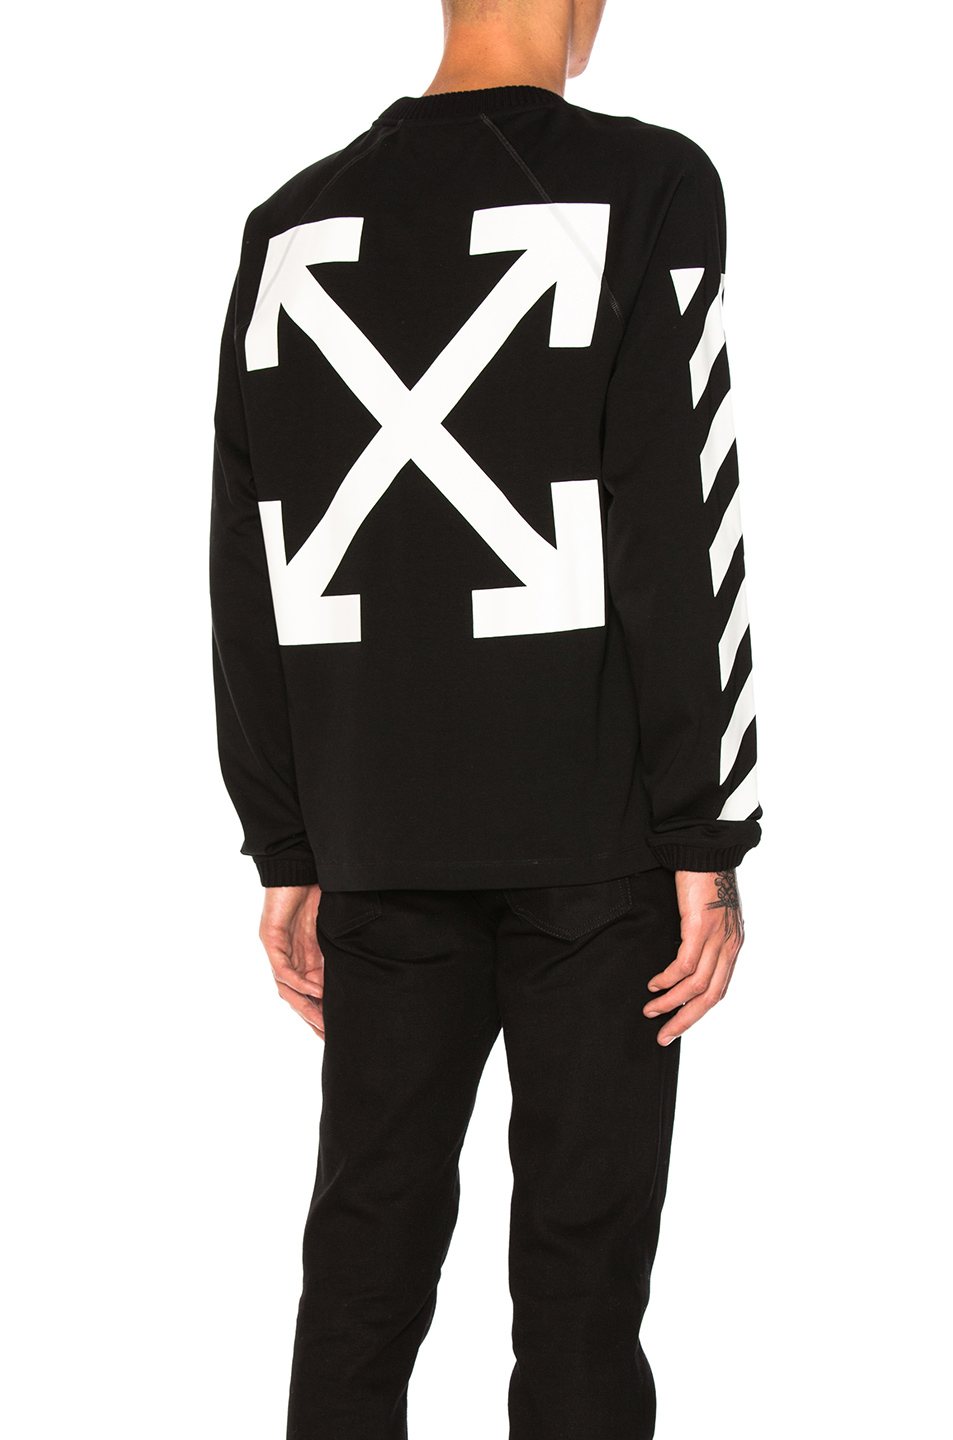 Moncler x Off White Long Sleeve Shirt in Black,White